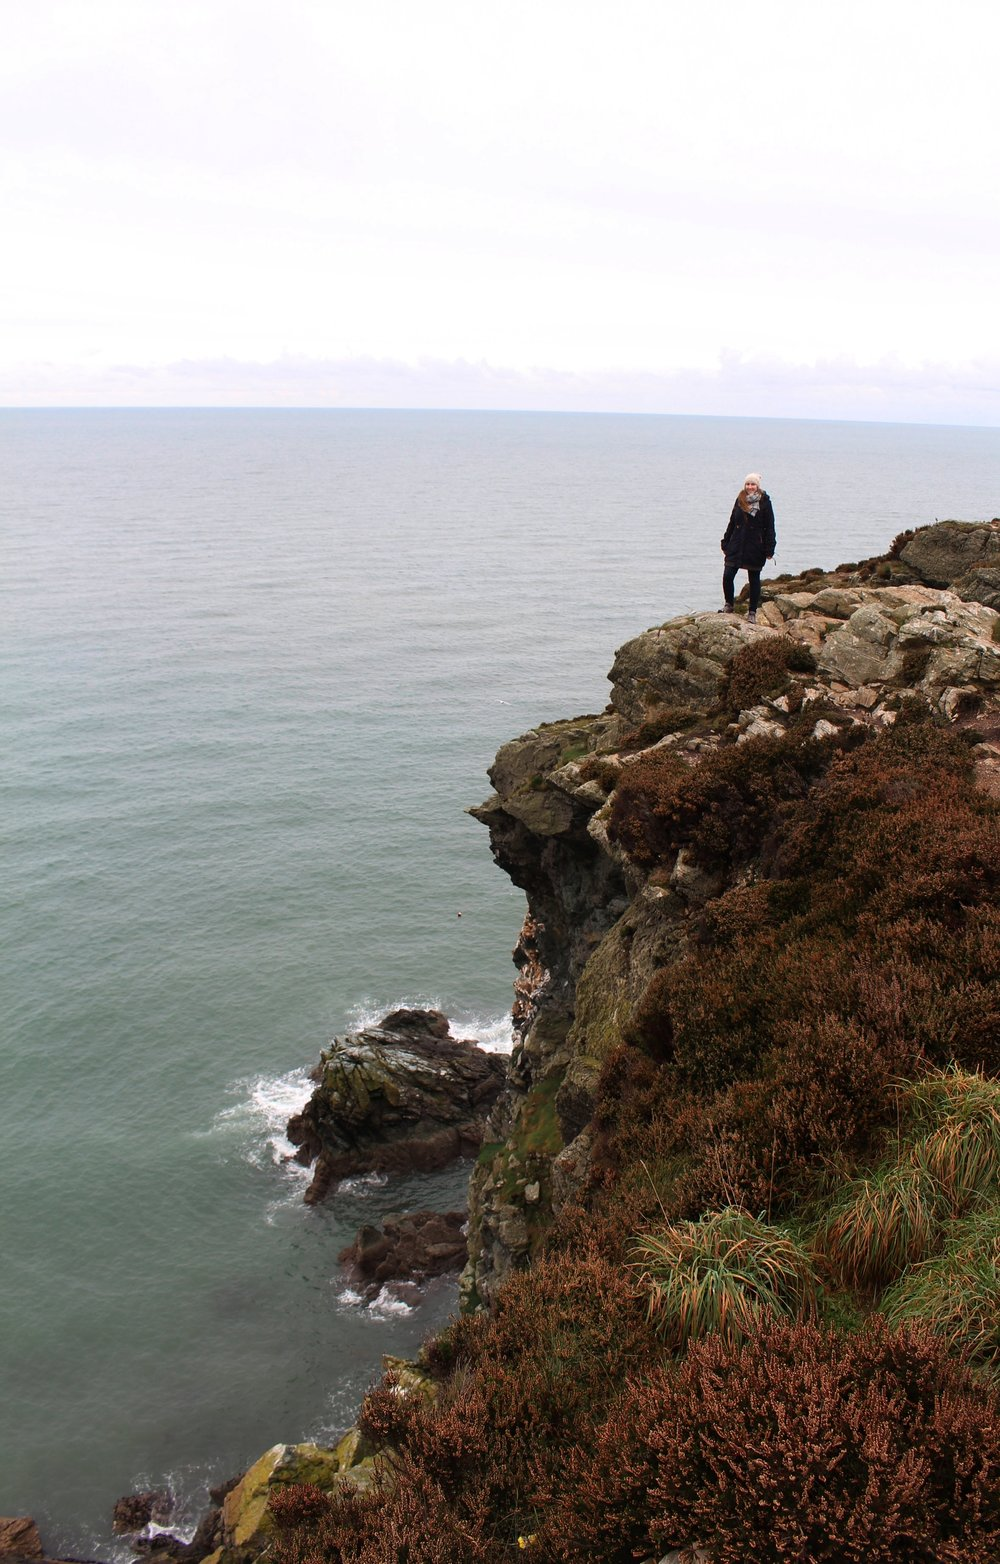 Me standing on the Cliffs